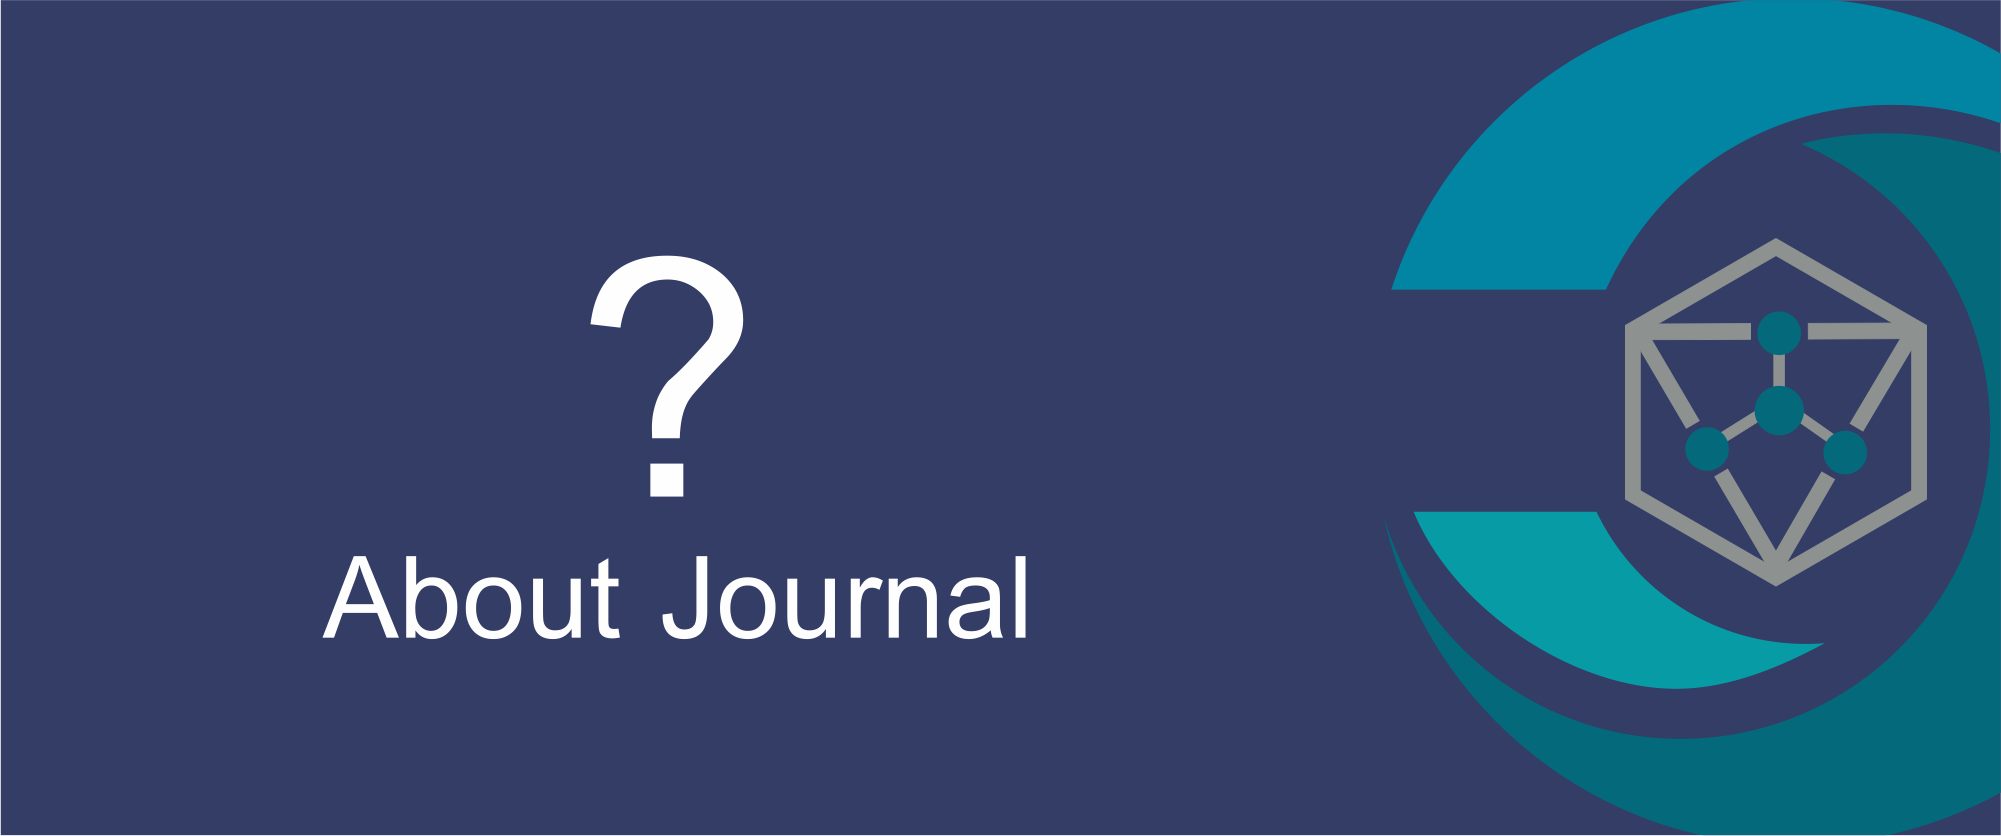 About Journal